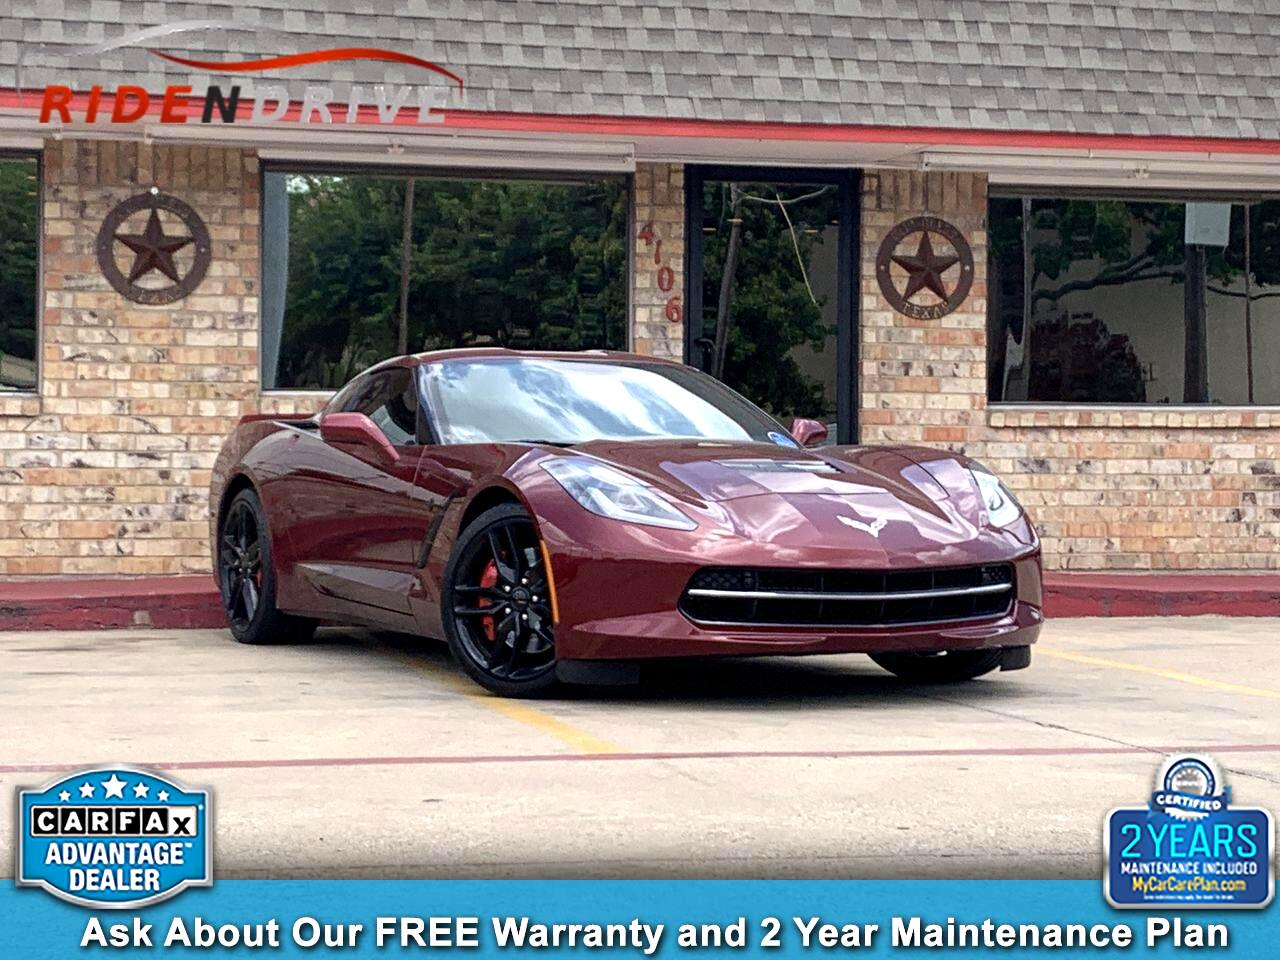 2016 Chevrolet Corvette 2dr Stingray Z51 Cpe w/3LT